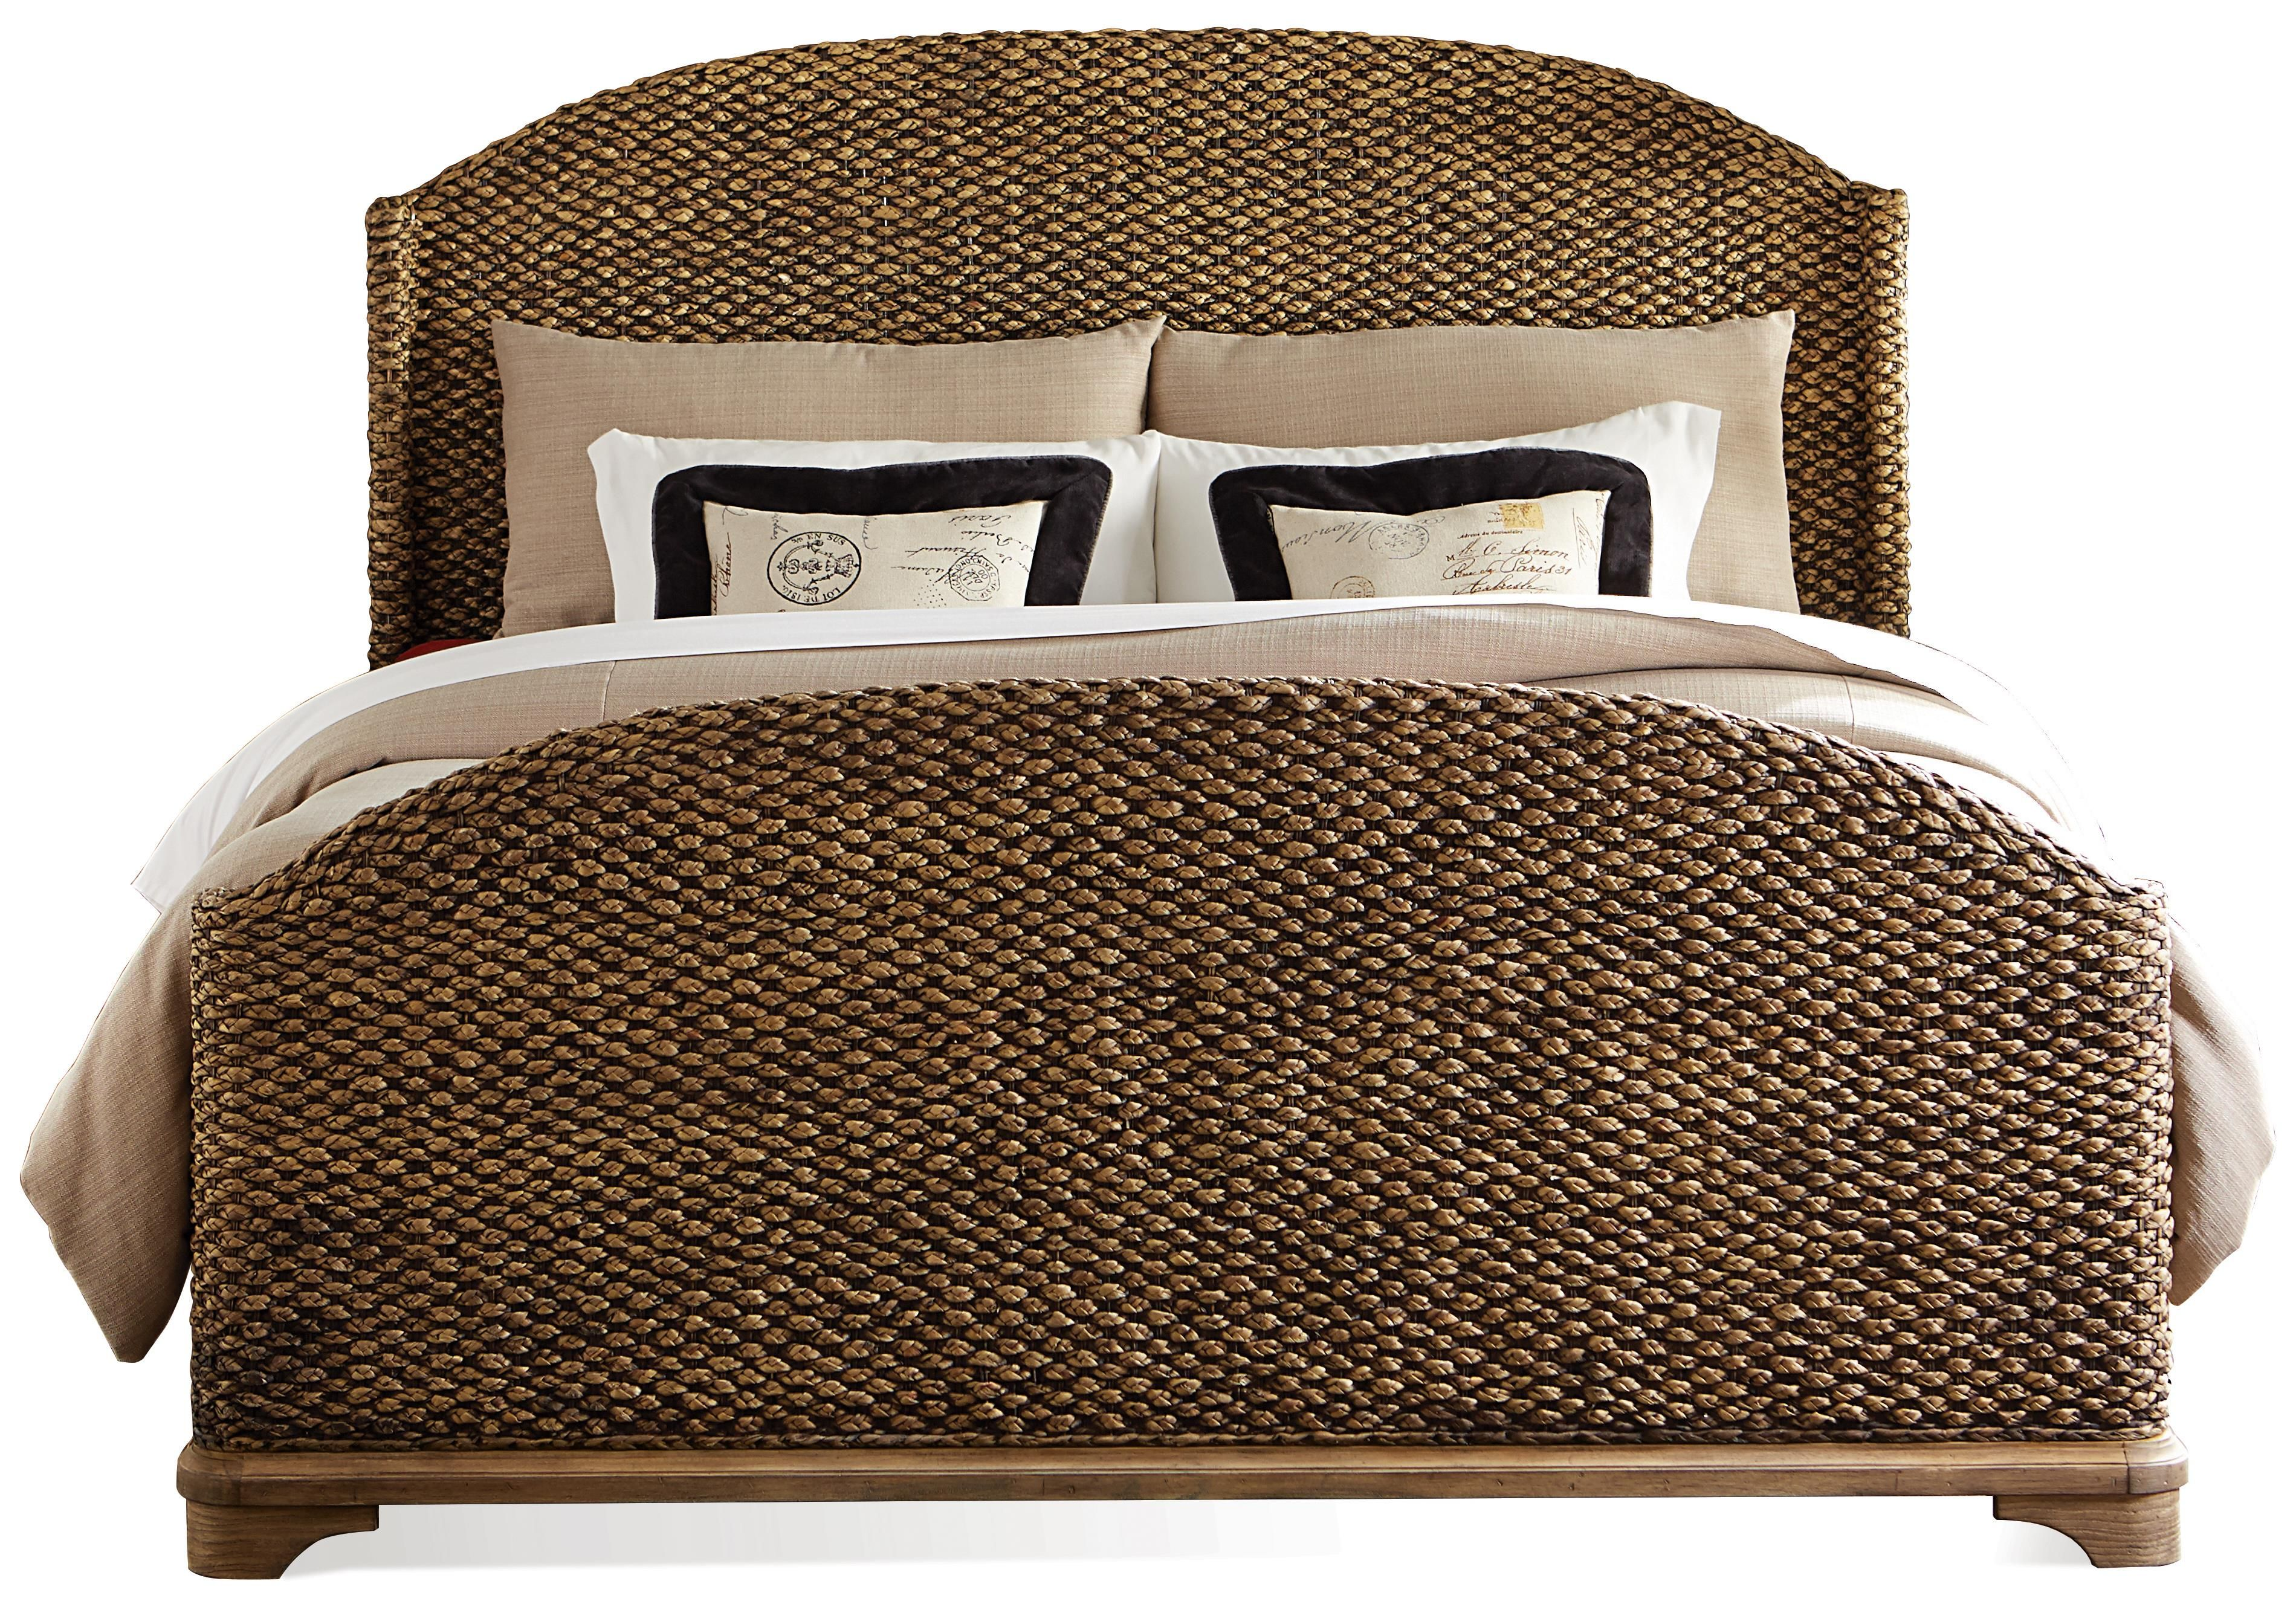 Brings Exceptional Warmth To Your Bedroom With Seagrass Headboard